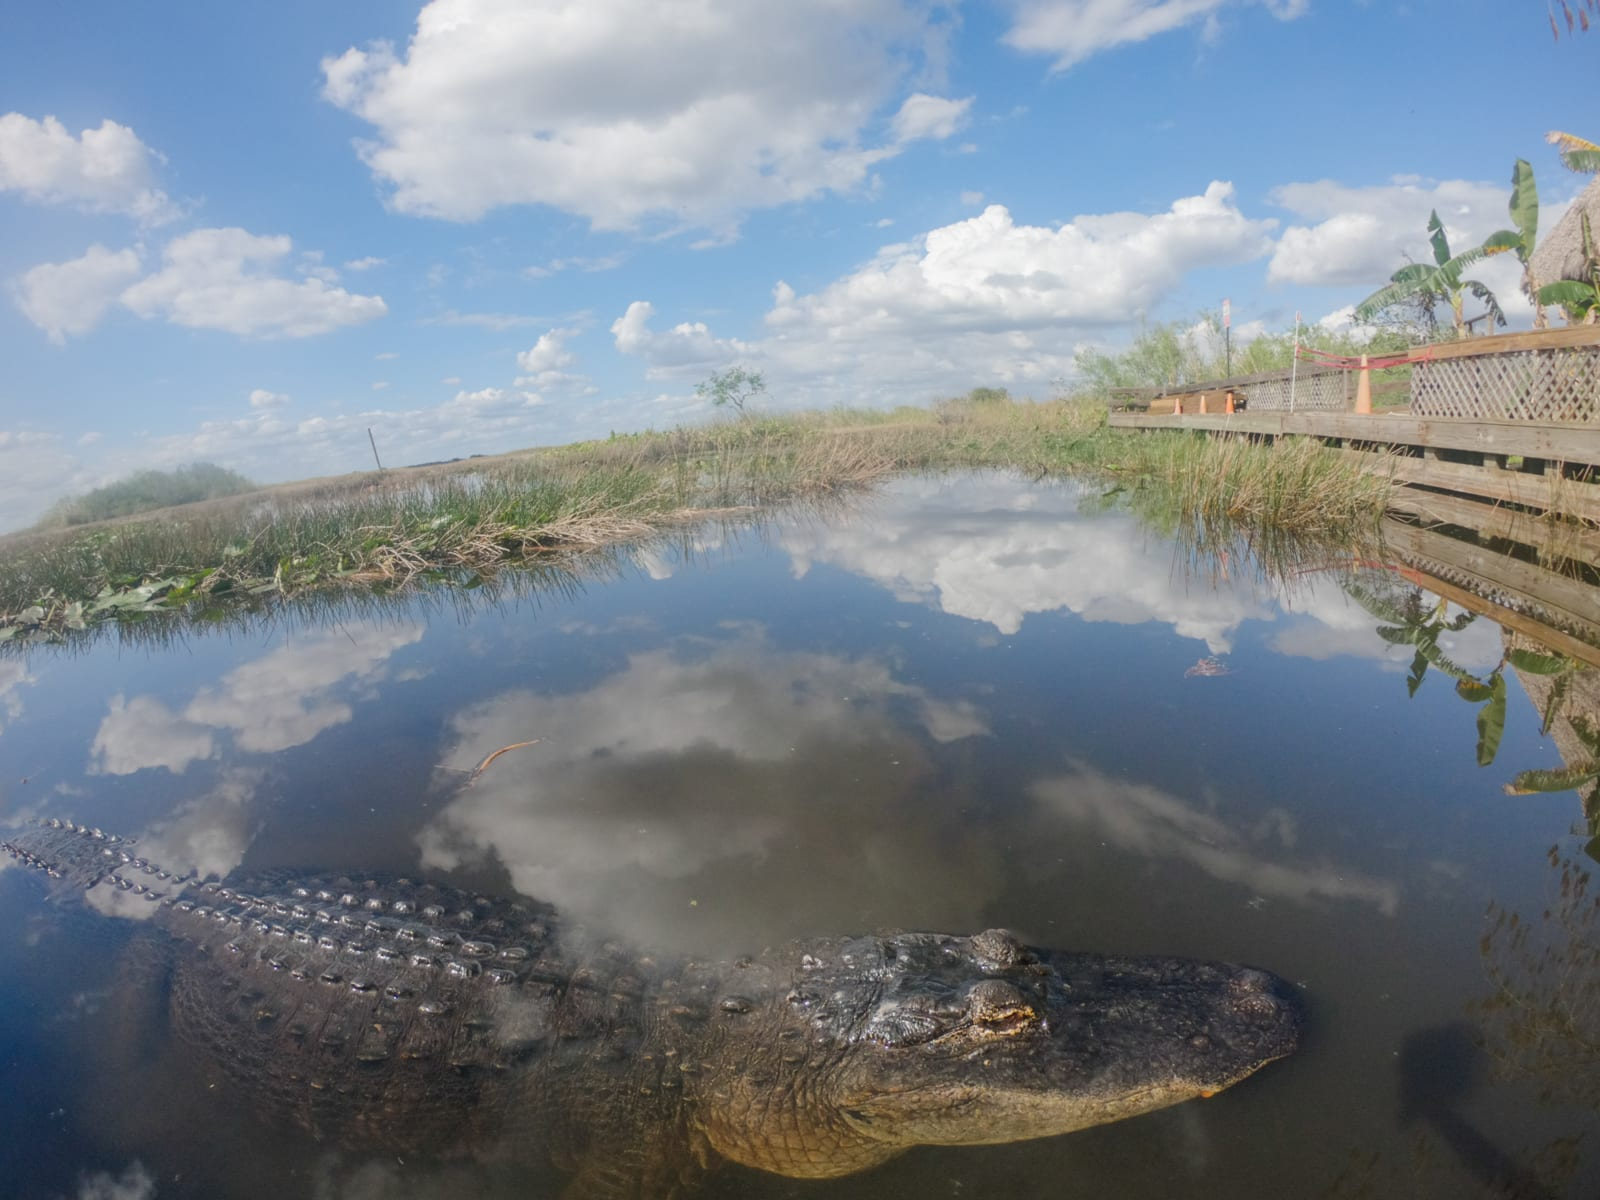 An alligator in the Everglades